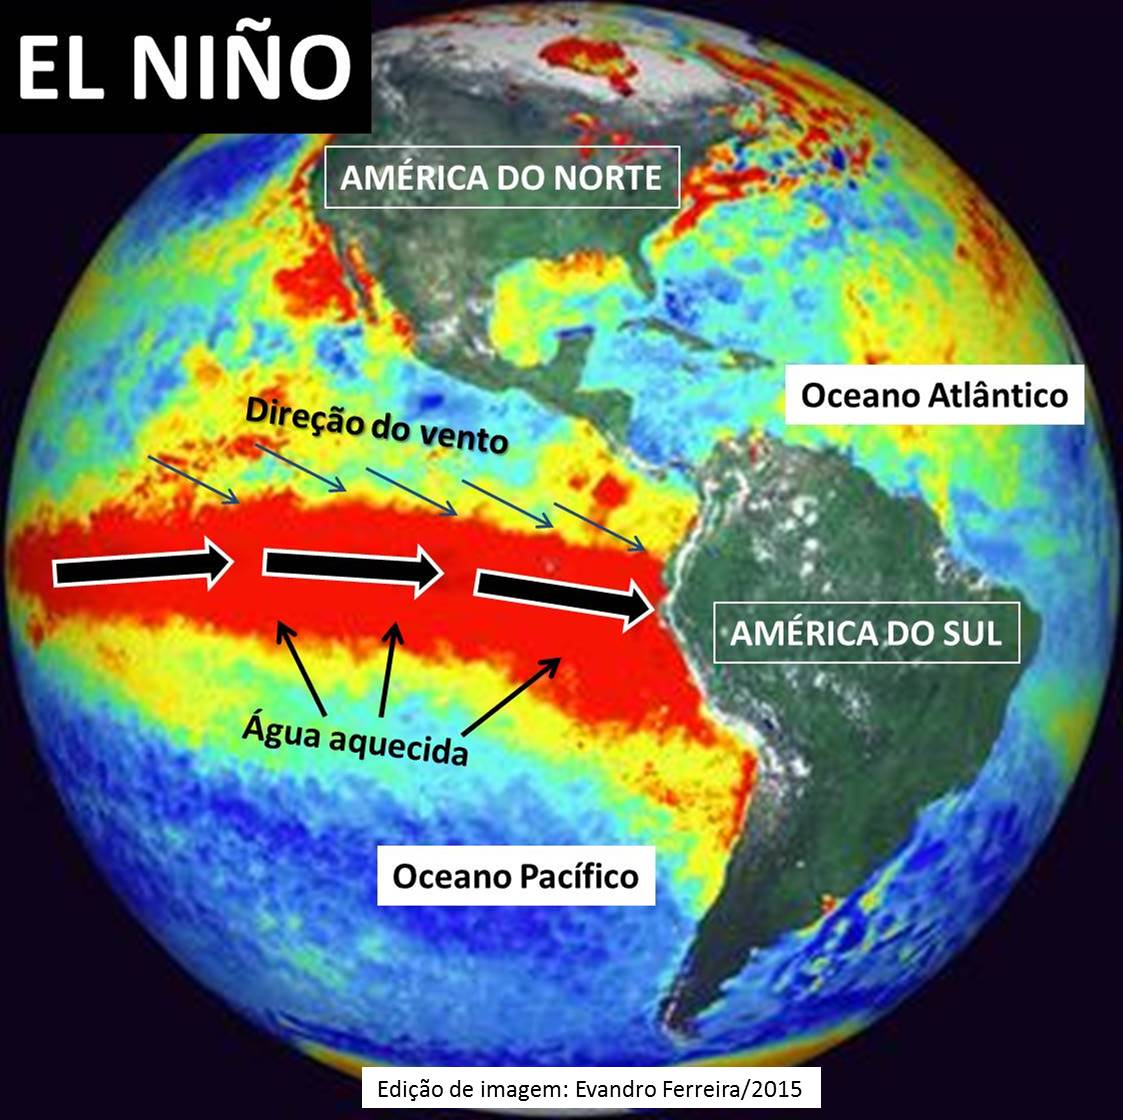 an analysis of the origins and effects of el nino Potential effects of el niño on australia include the term el niño describes a particular phase of the enso climate cycle although most major australian droughts have been associated with el niño, analysis of past el niño events shows that widespread drought does not occur with every.